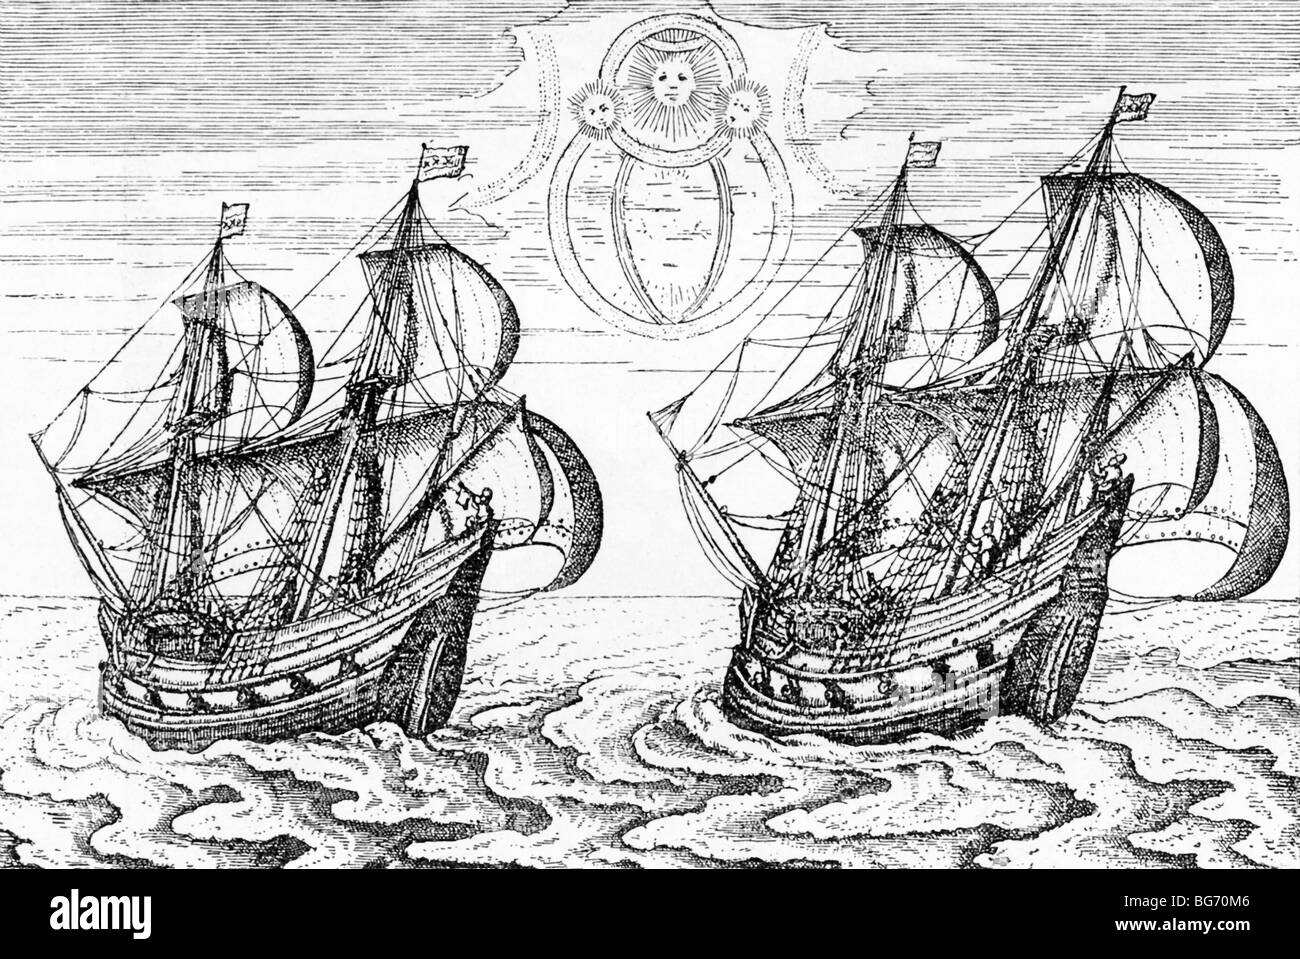 Two of  Dutch navigator Willen Barents' ships as depicted in  account of Barents' three voyages (1594-1597) - Stock Image